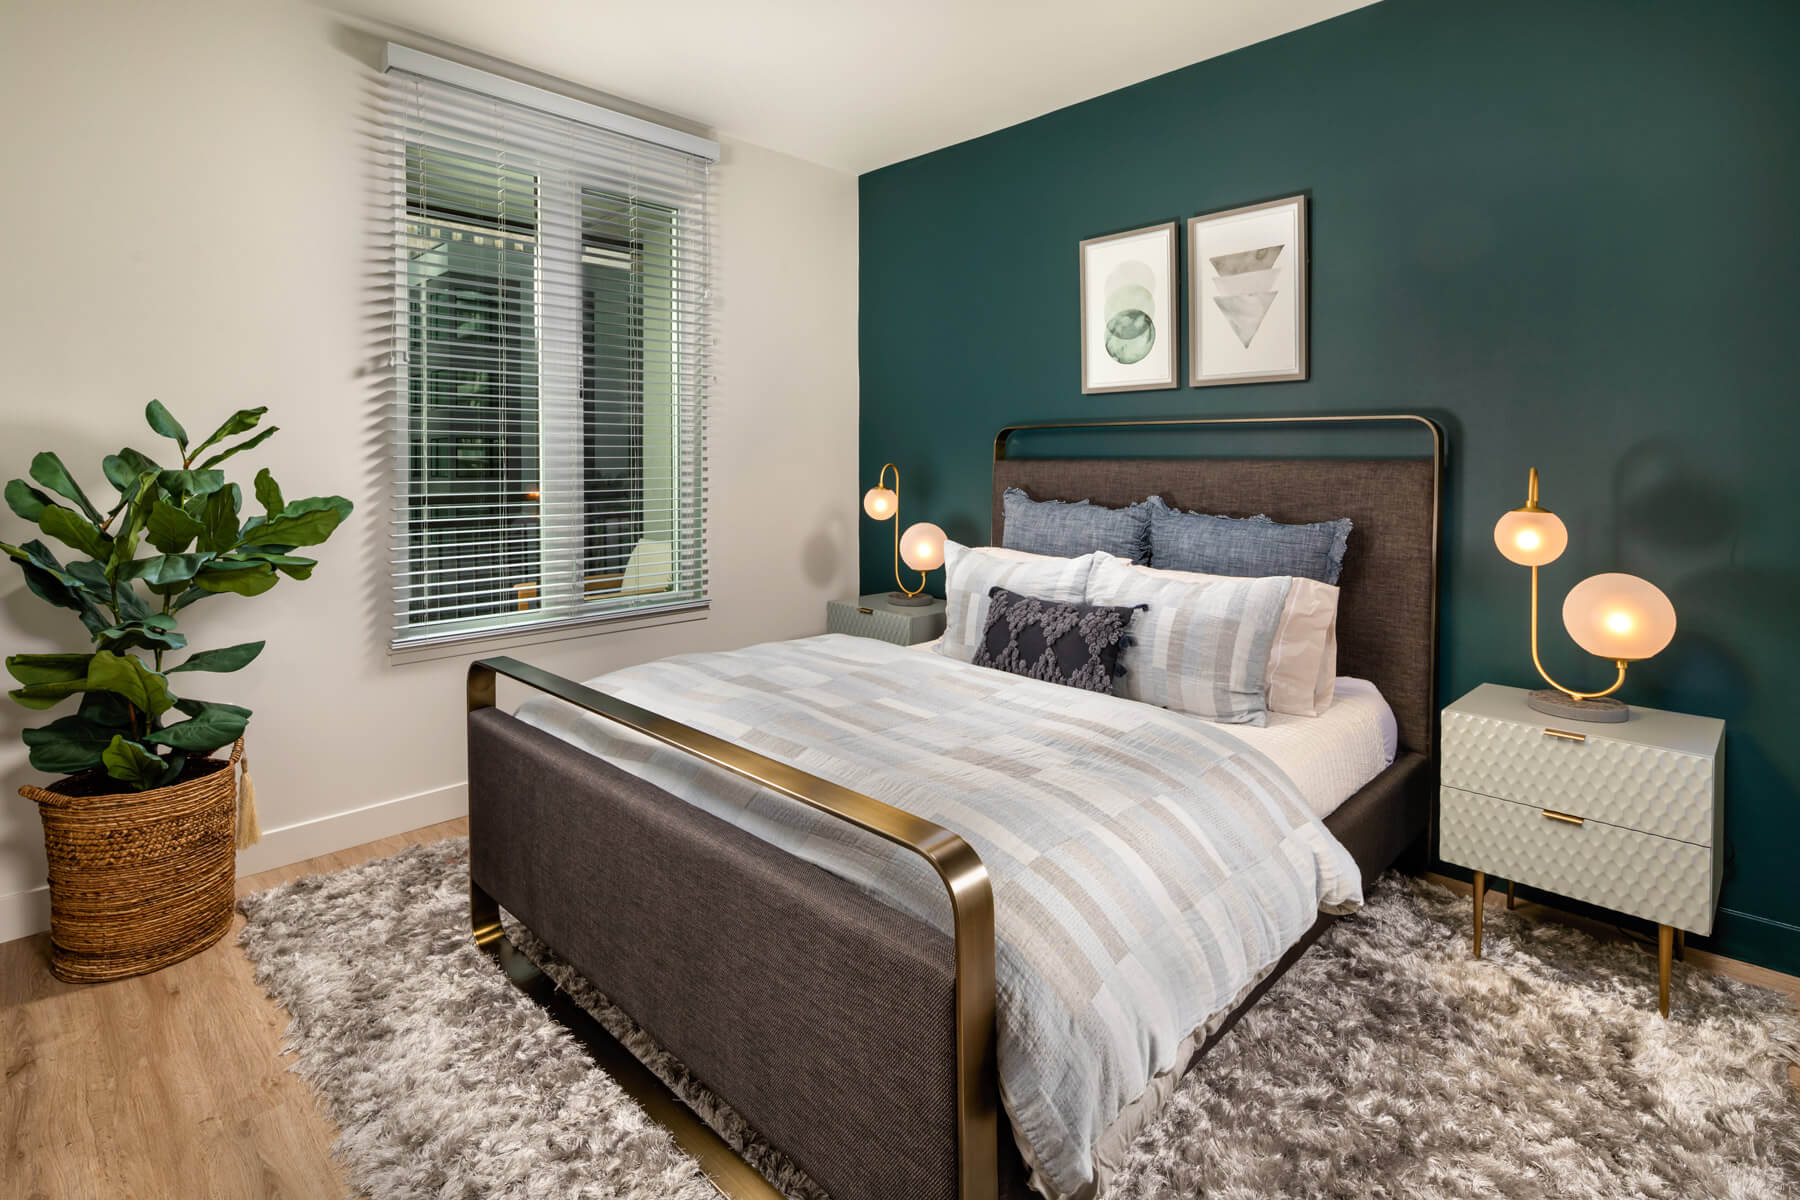 DTLA Apartments - Spacious Master Bedroom With Beautiful Hardwood Floors, Gorgeous Forrest Green Accent Wall, and Window With View